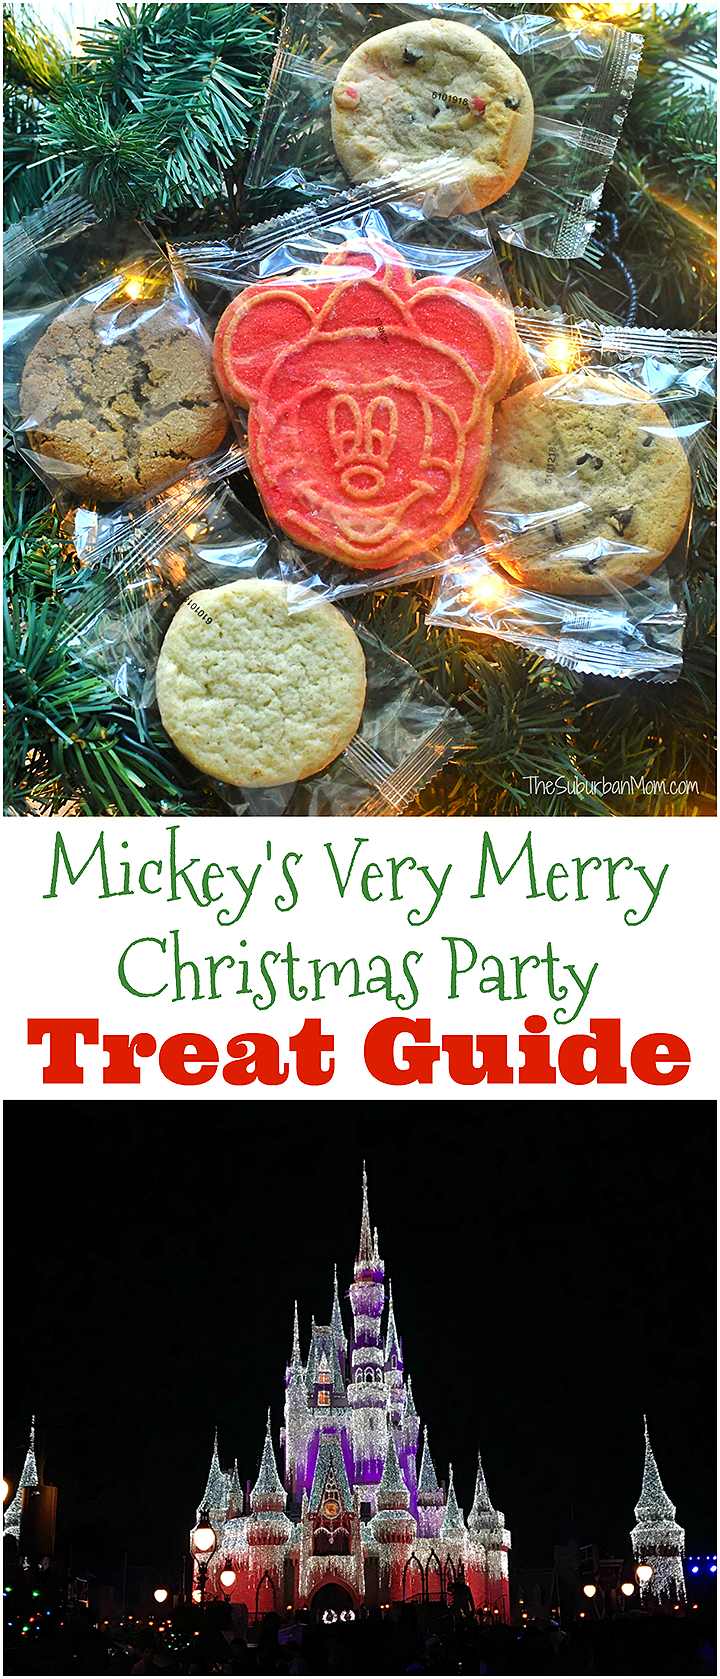 Mickey's Very Merry Christmas Party Treat Guide